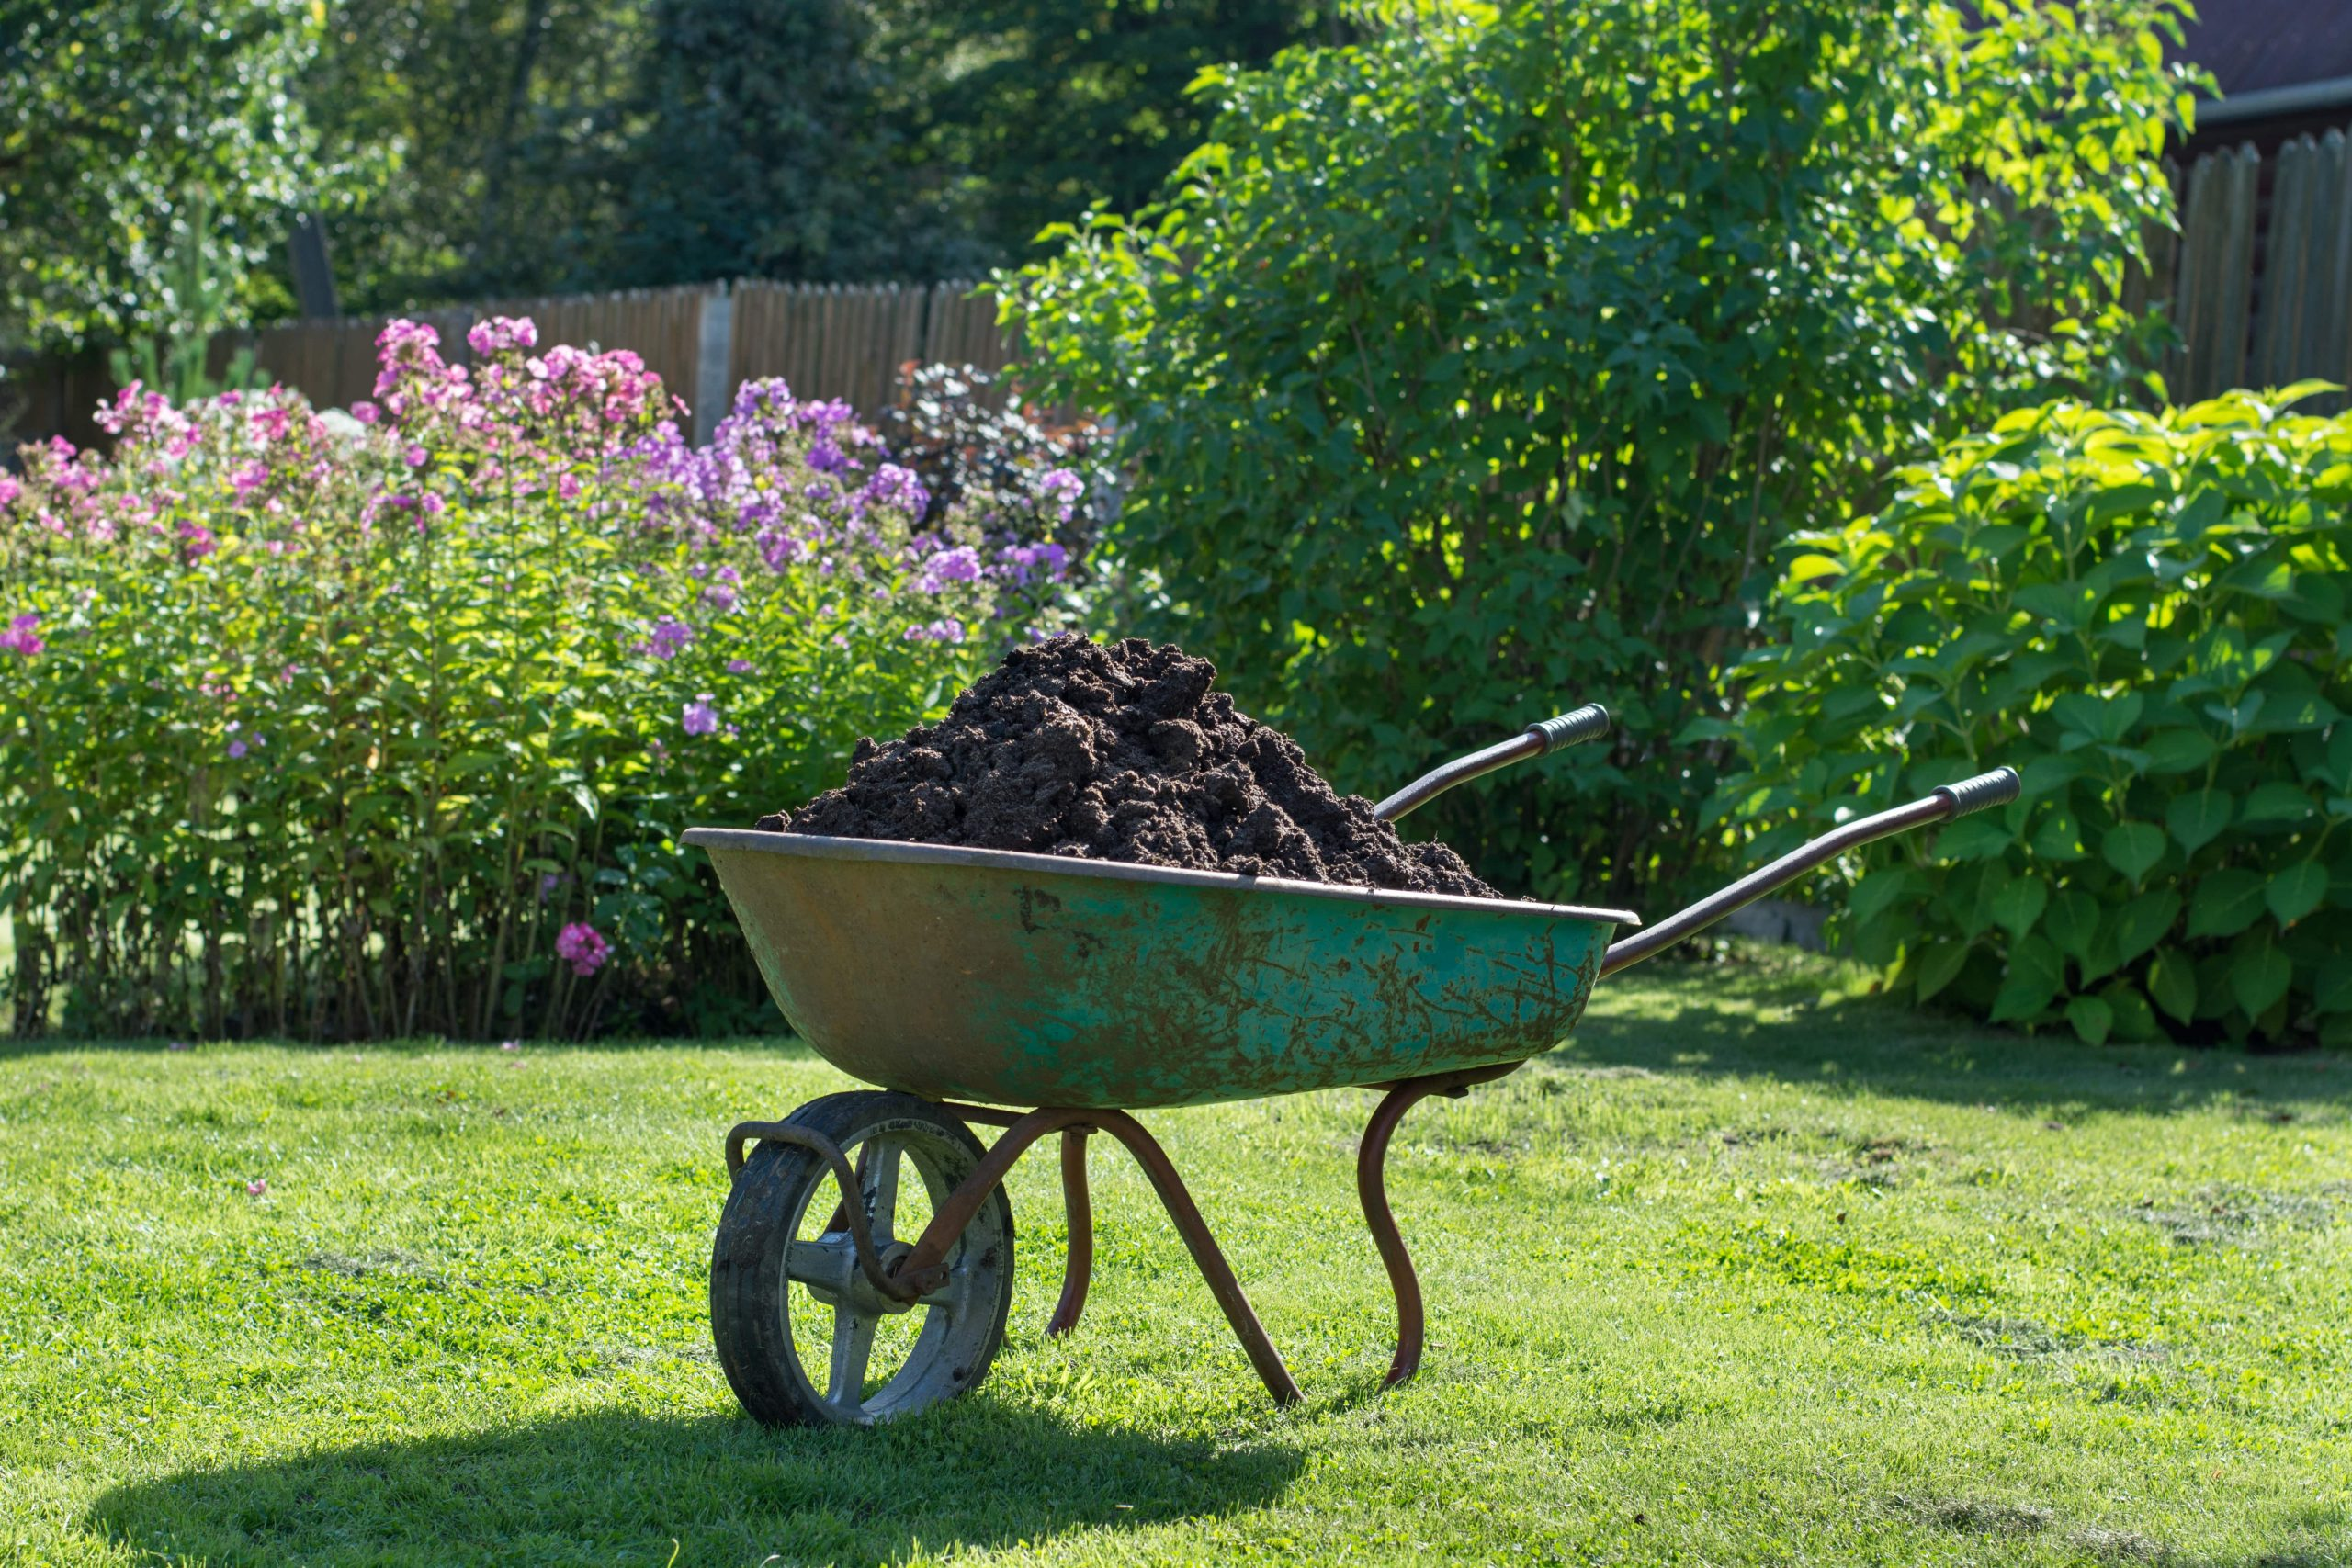 Compost in a wheel barrow on a lawn.